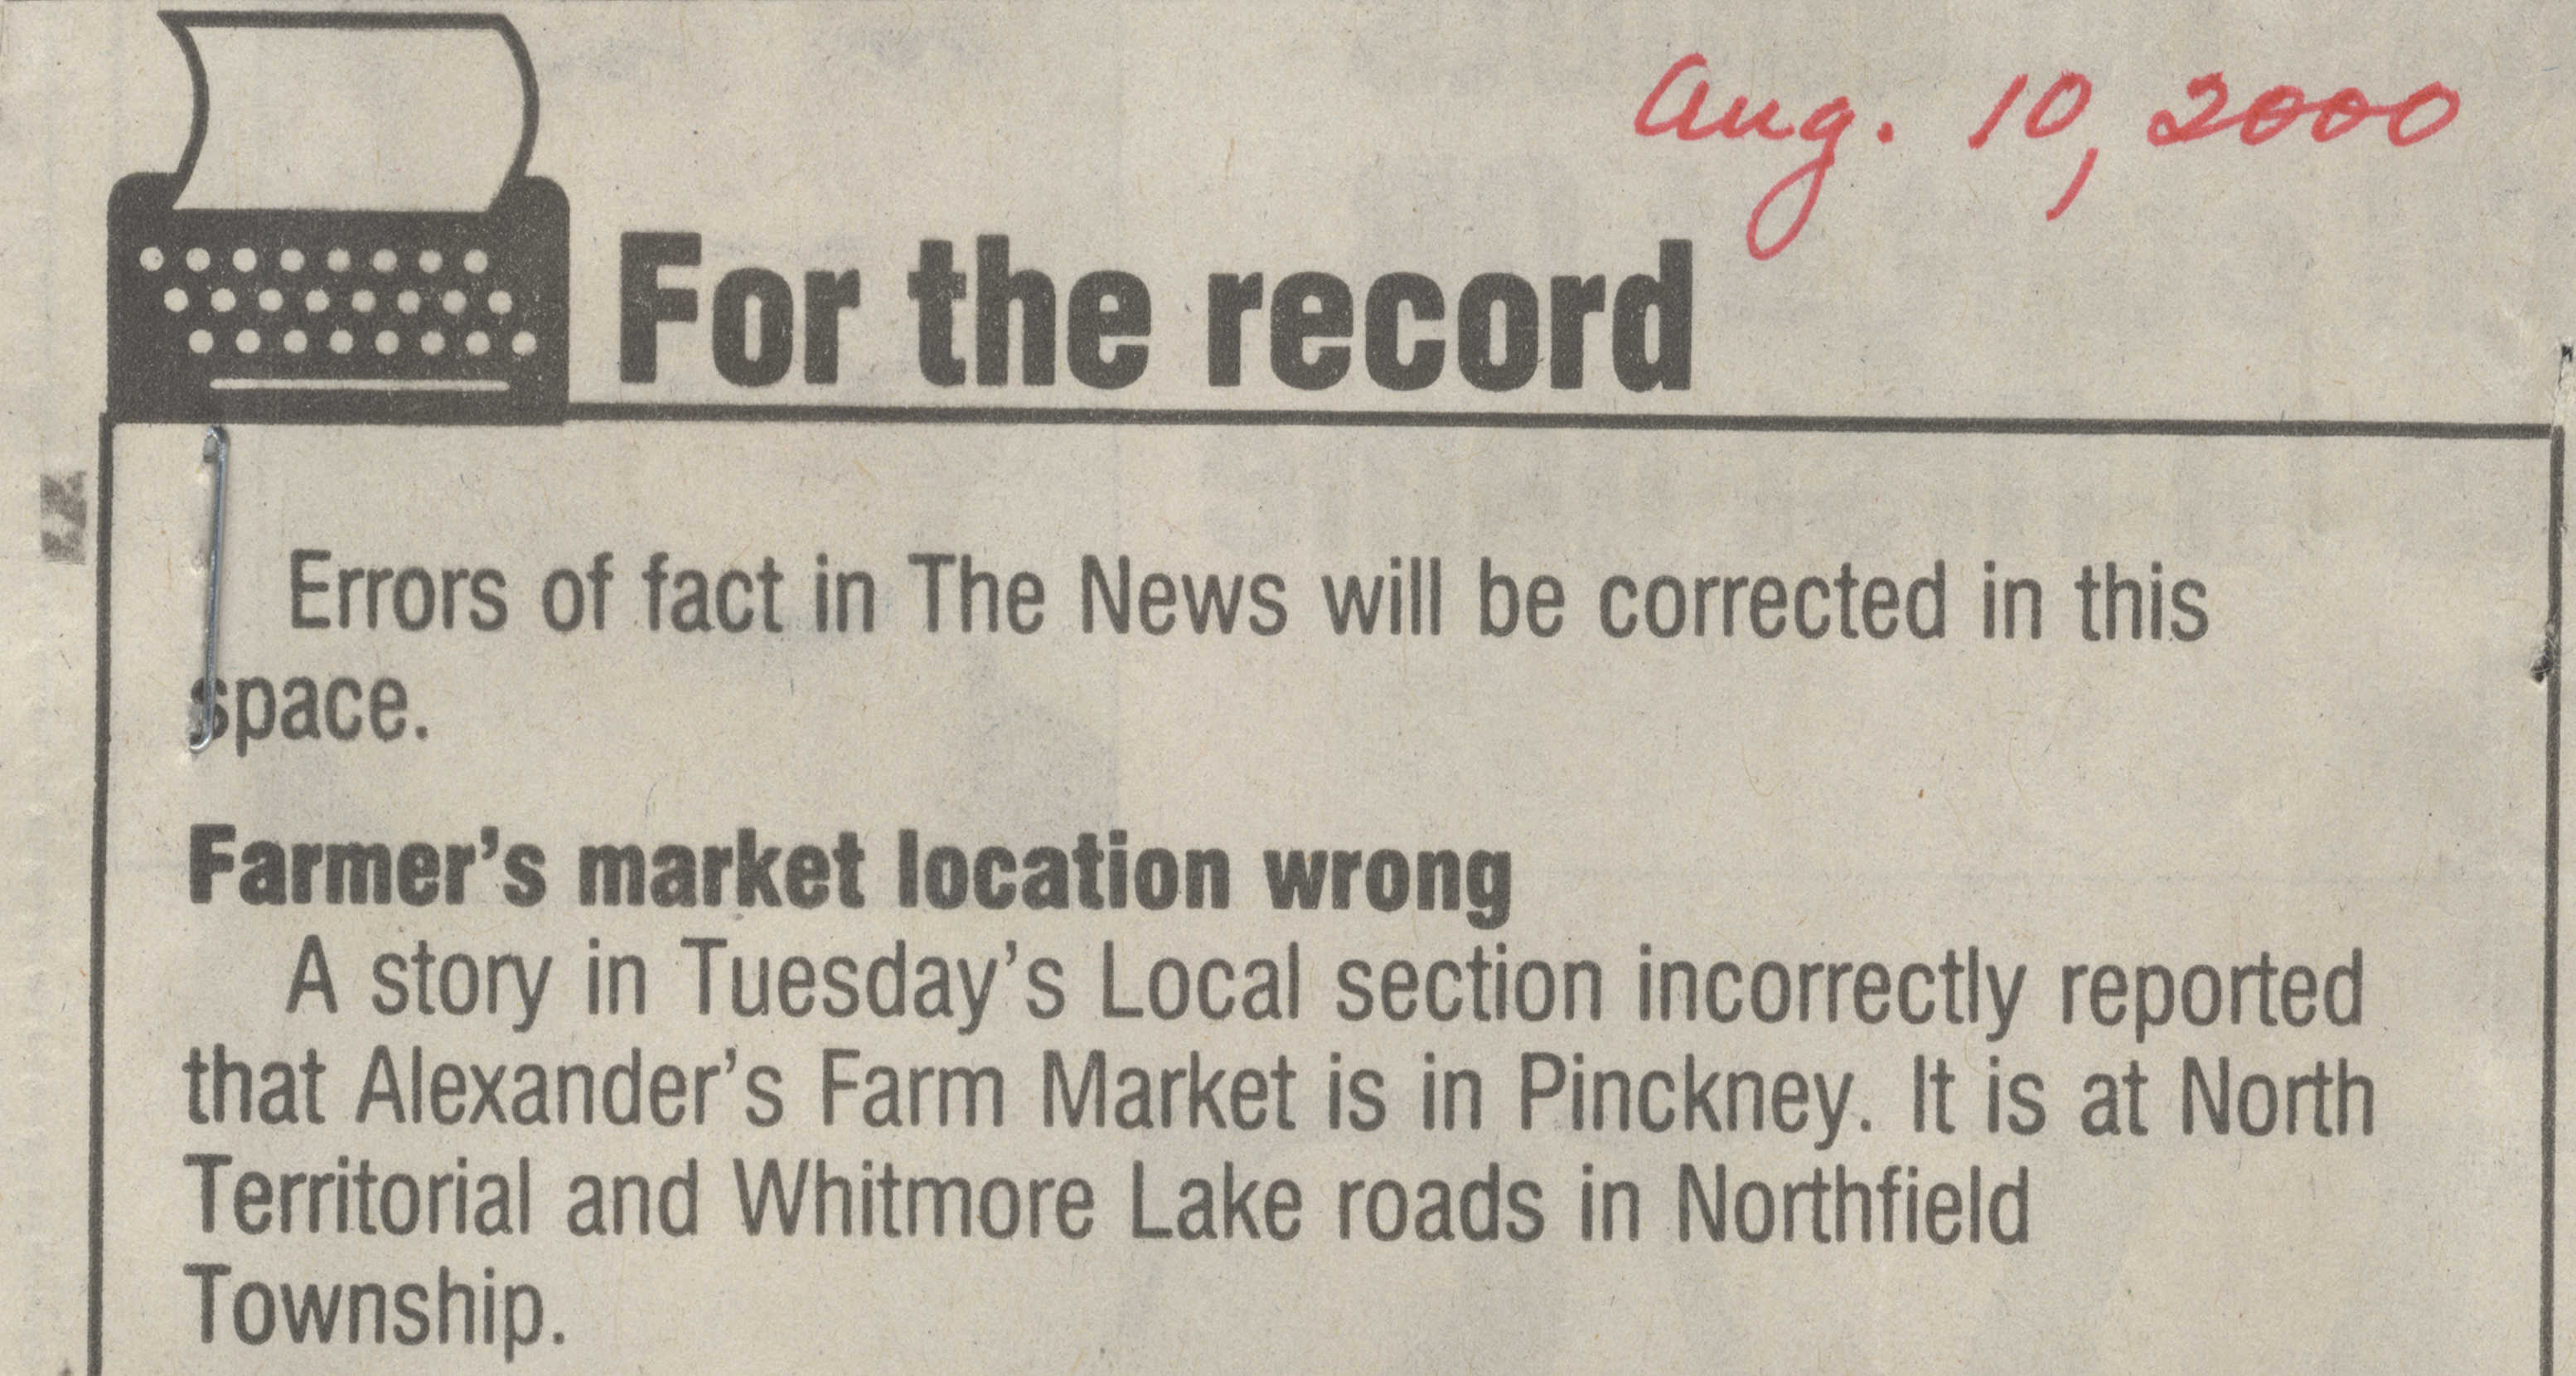 For the record: Farmers market location wrong image